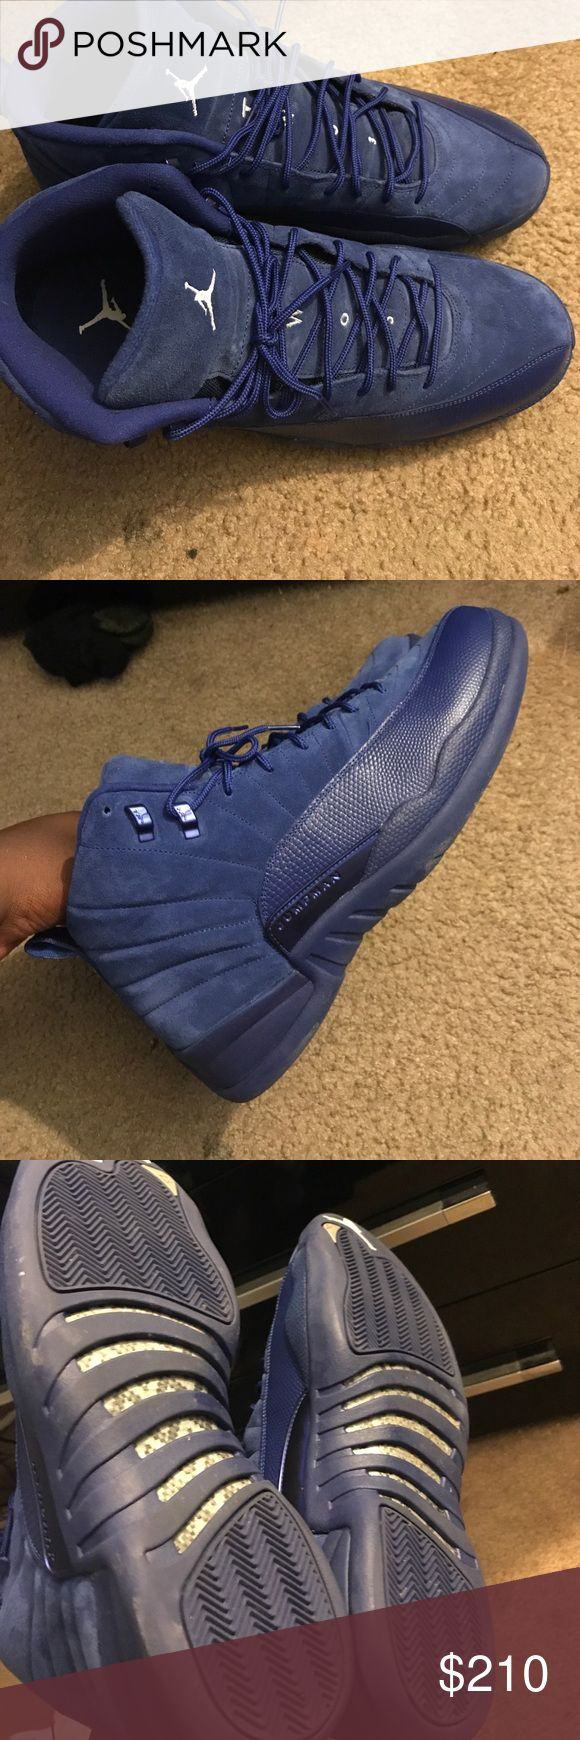 Air Jordan retro 12 blue All blue. Vnds. Only worn once. Very hard to find Jordan Shoes Sneakers